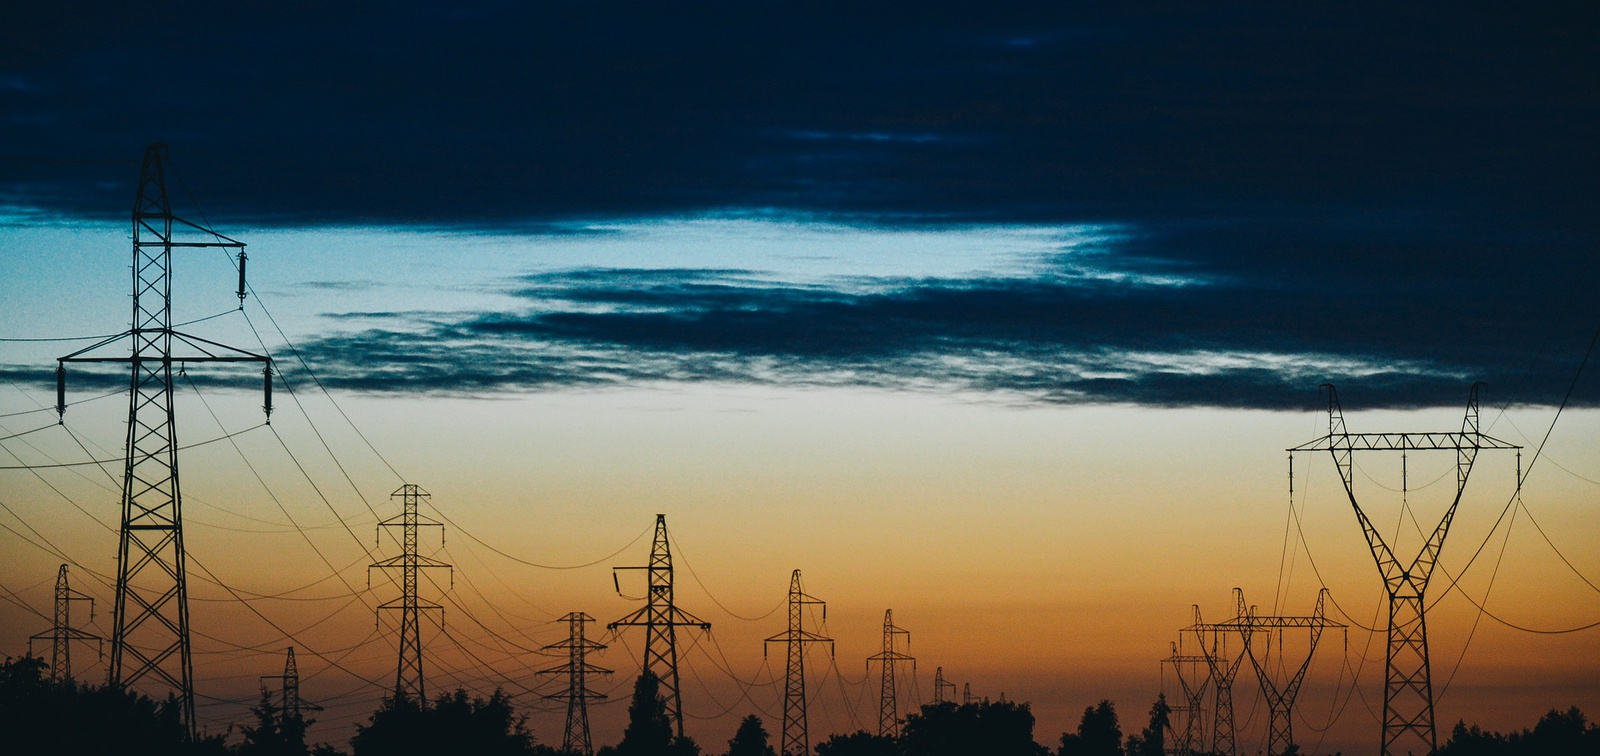 As COVID-19 surges, federal regulators worry about energy sector supply chain